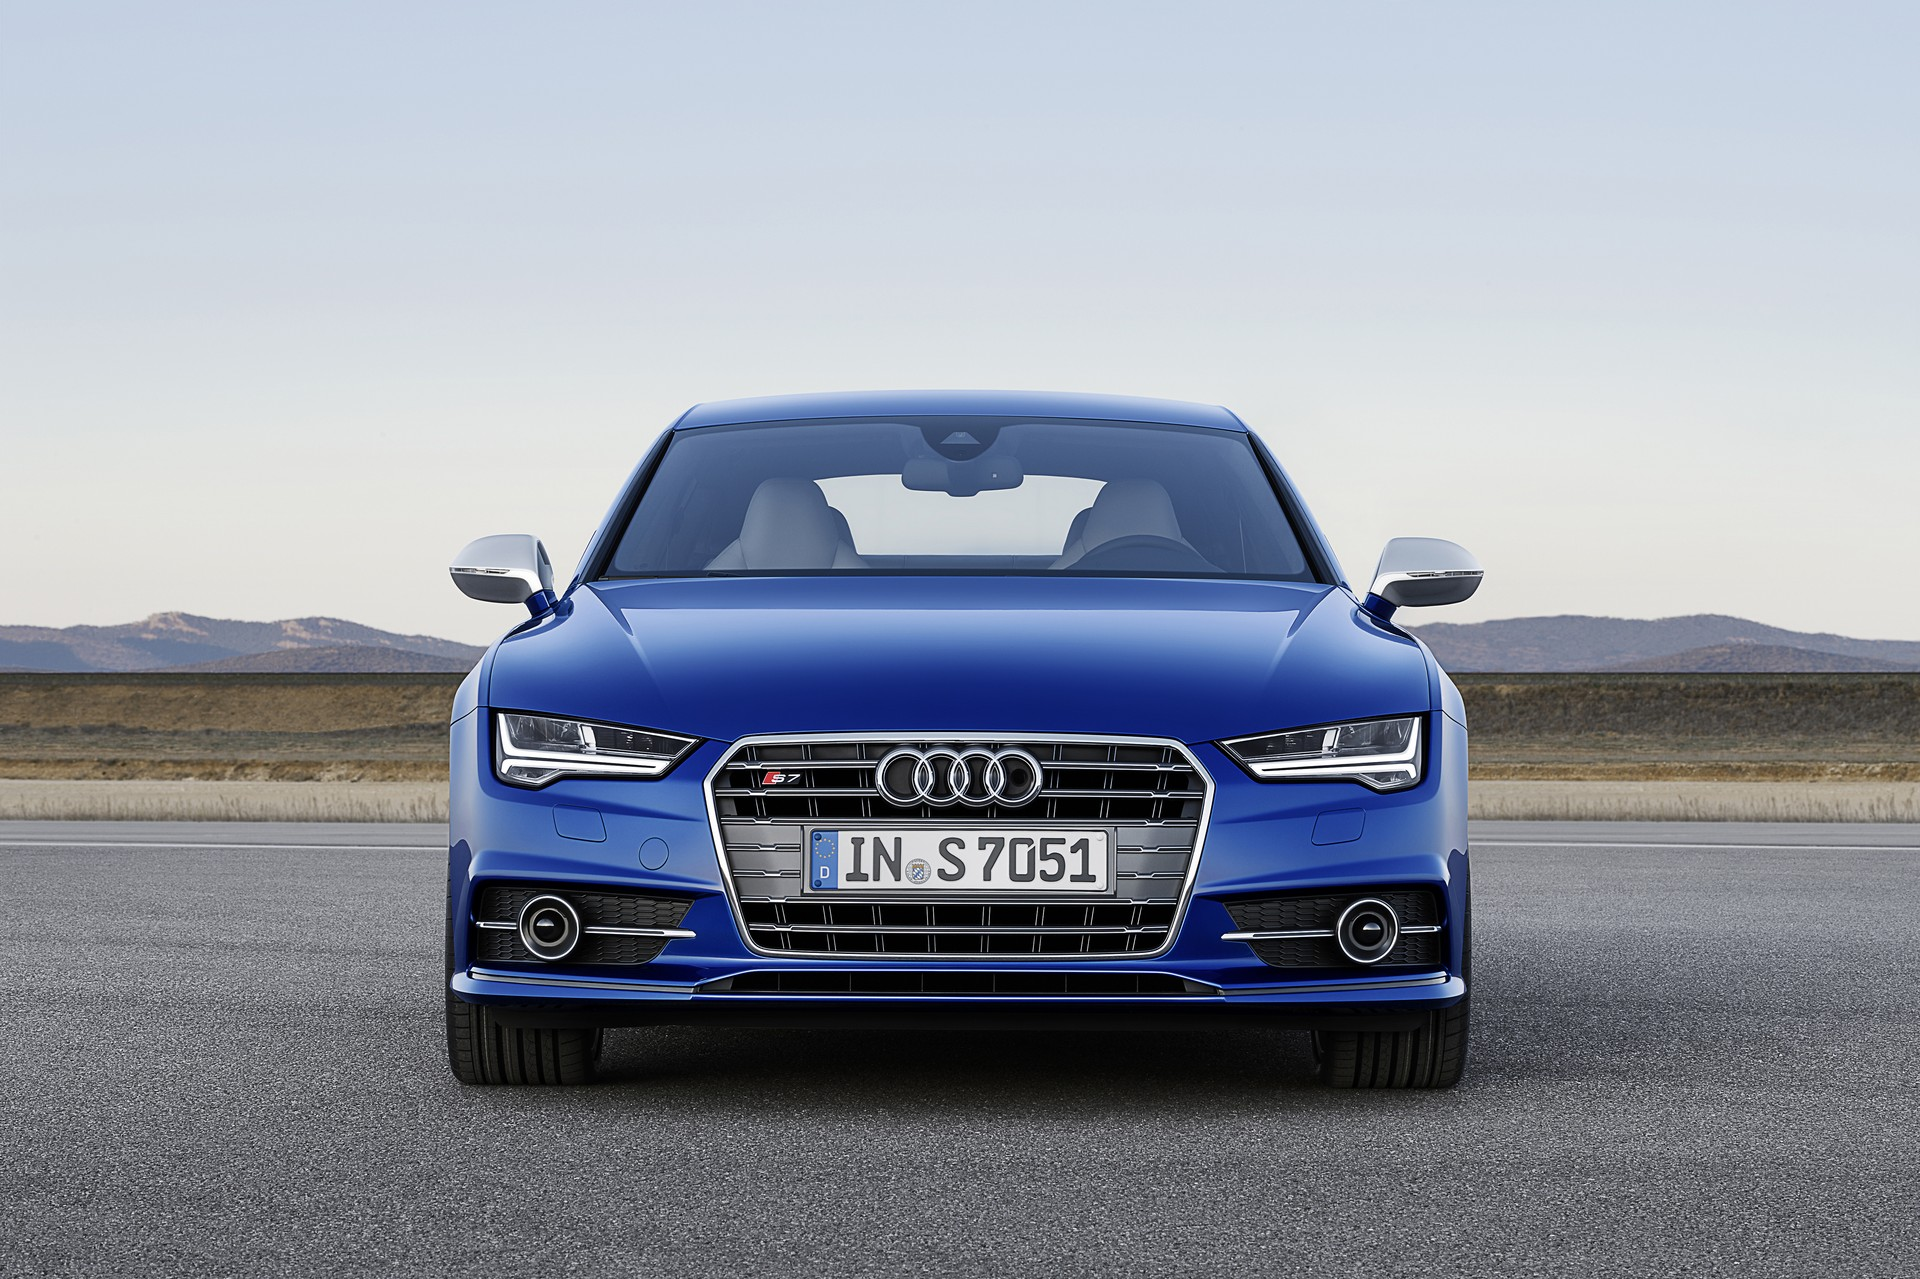 Wald Audi A7 Sportback Photos Image 18 Pictures to pin on Pinterest